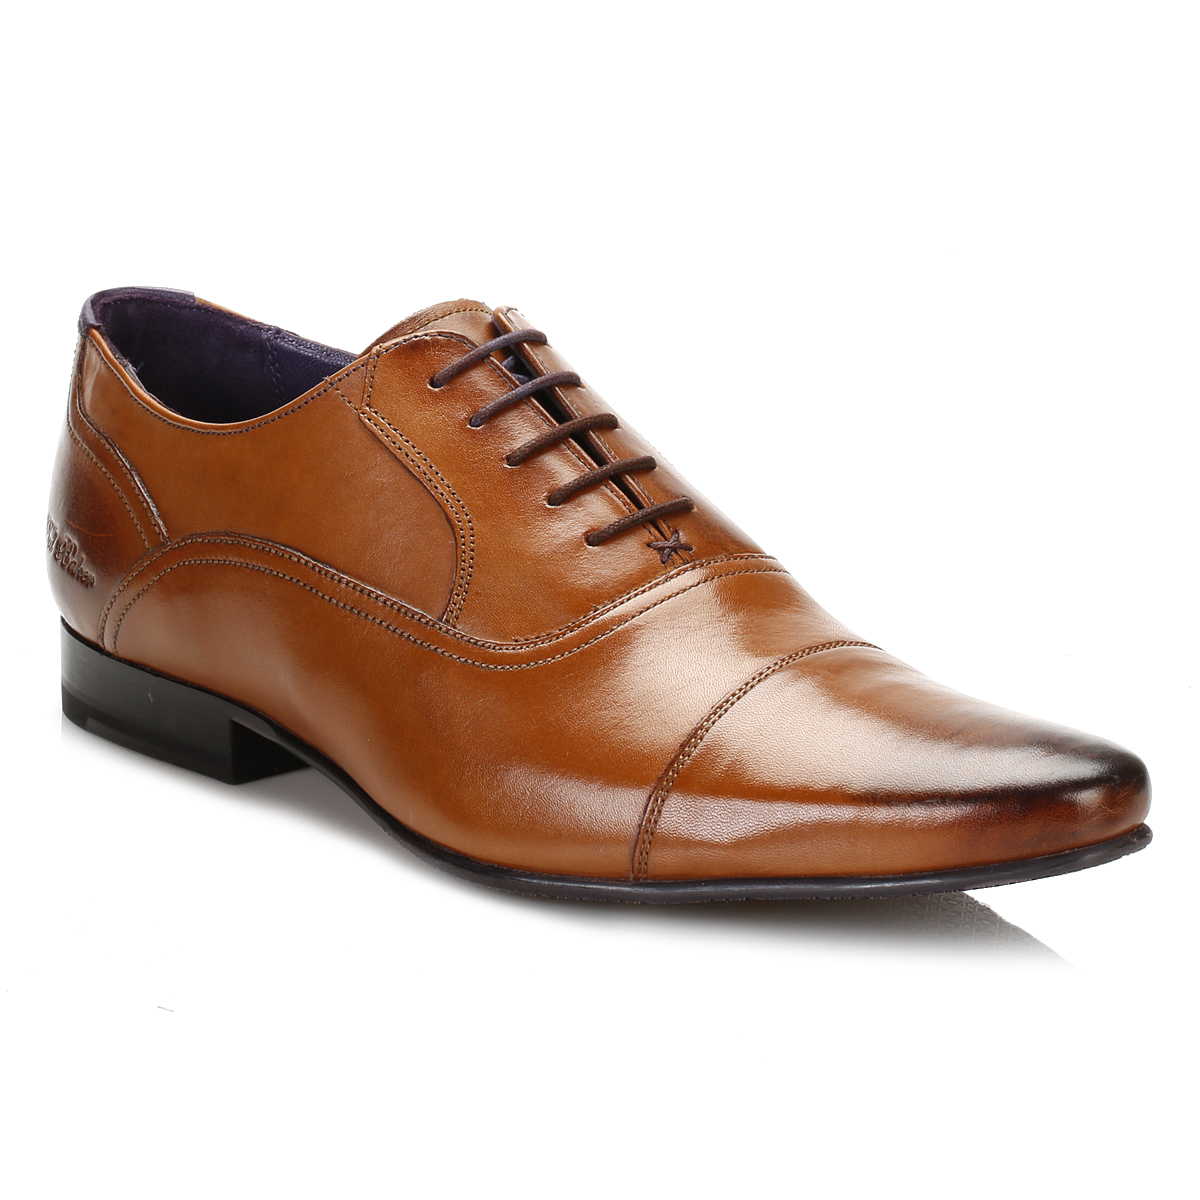 Brown leather shoes are a smart way to dress up a smart casual outfit for both day and night wear. Brown smart shoes and a suit works well if you want a cool alternative to your standard black pair. Suede shoes are a good summer essential, the brown tones and soft material give off a casual look.